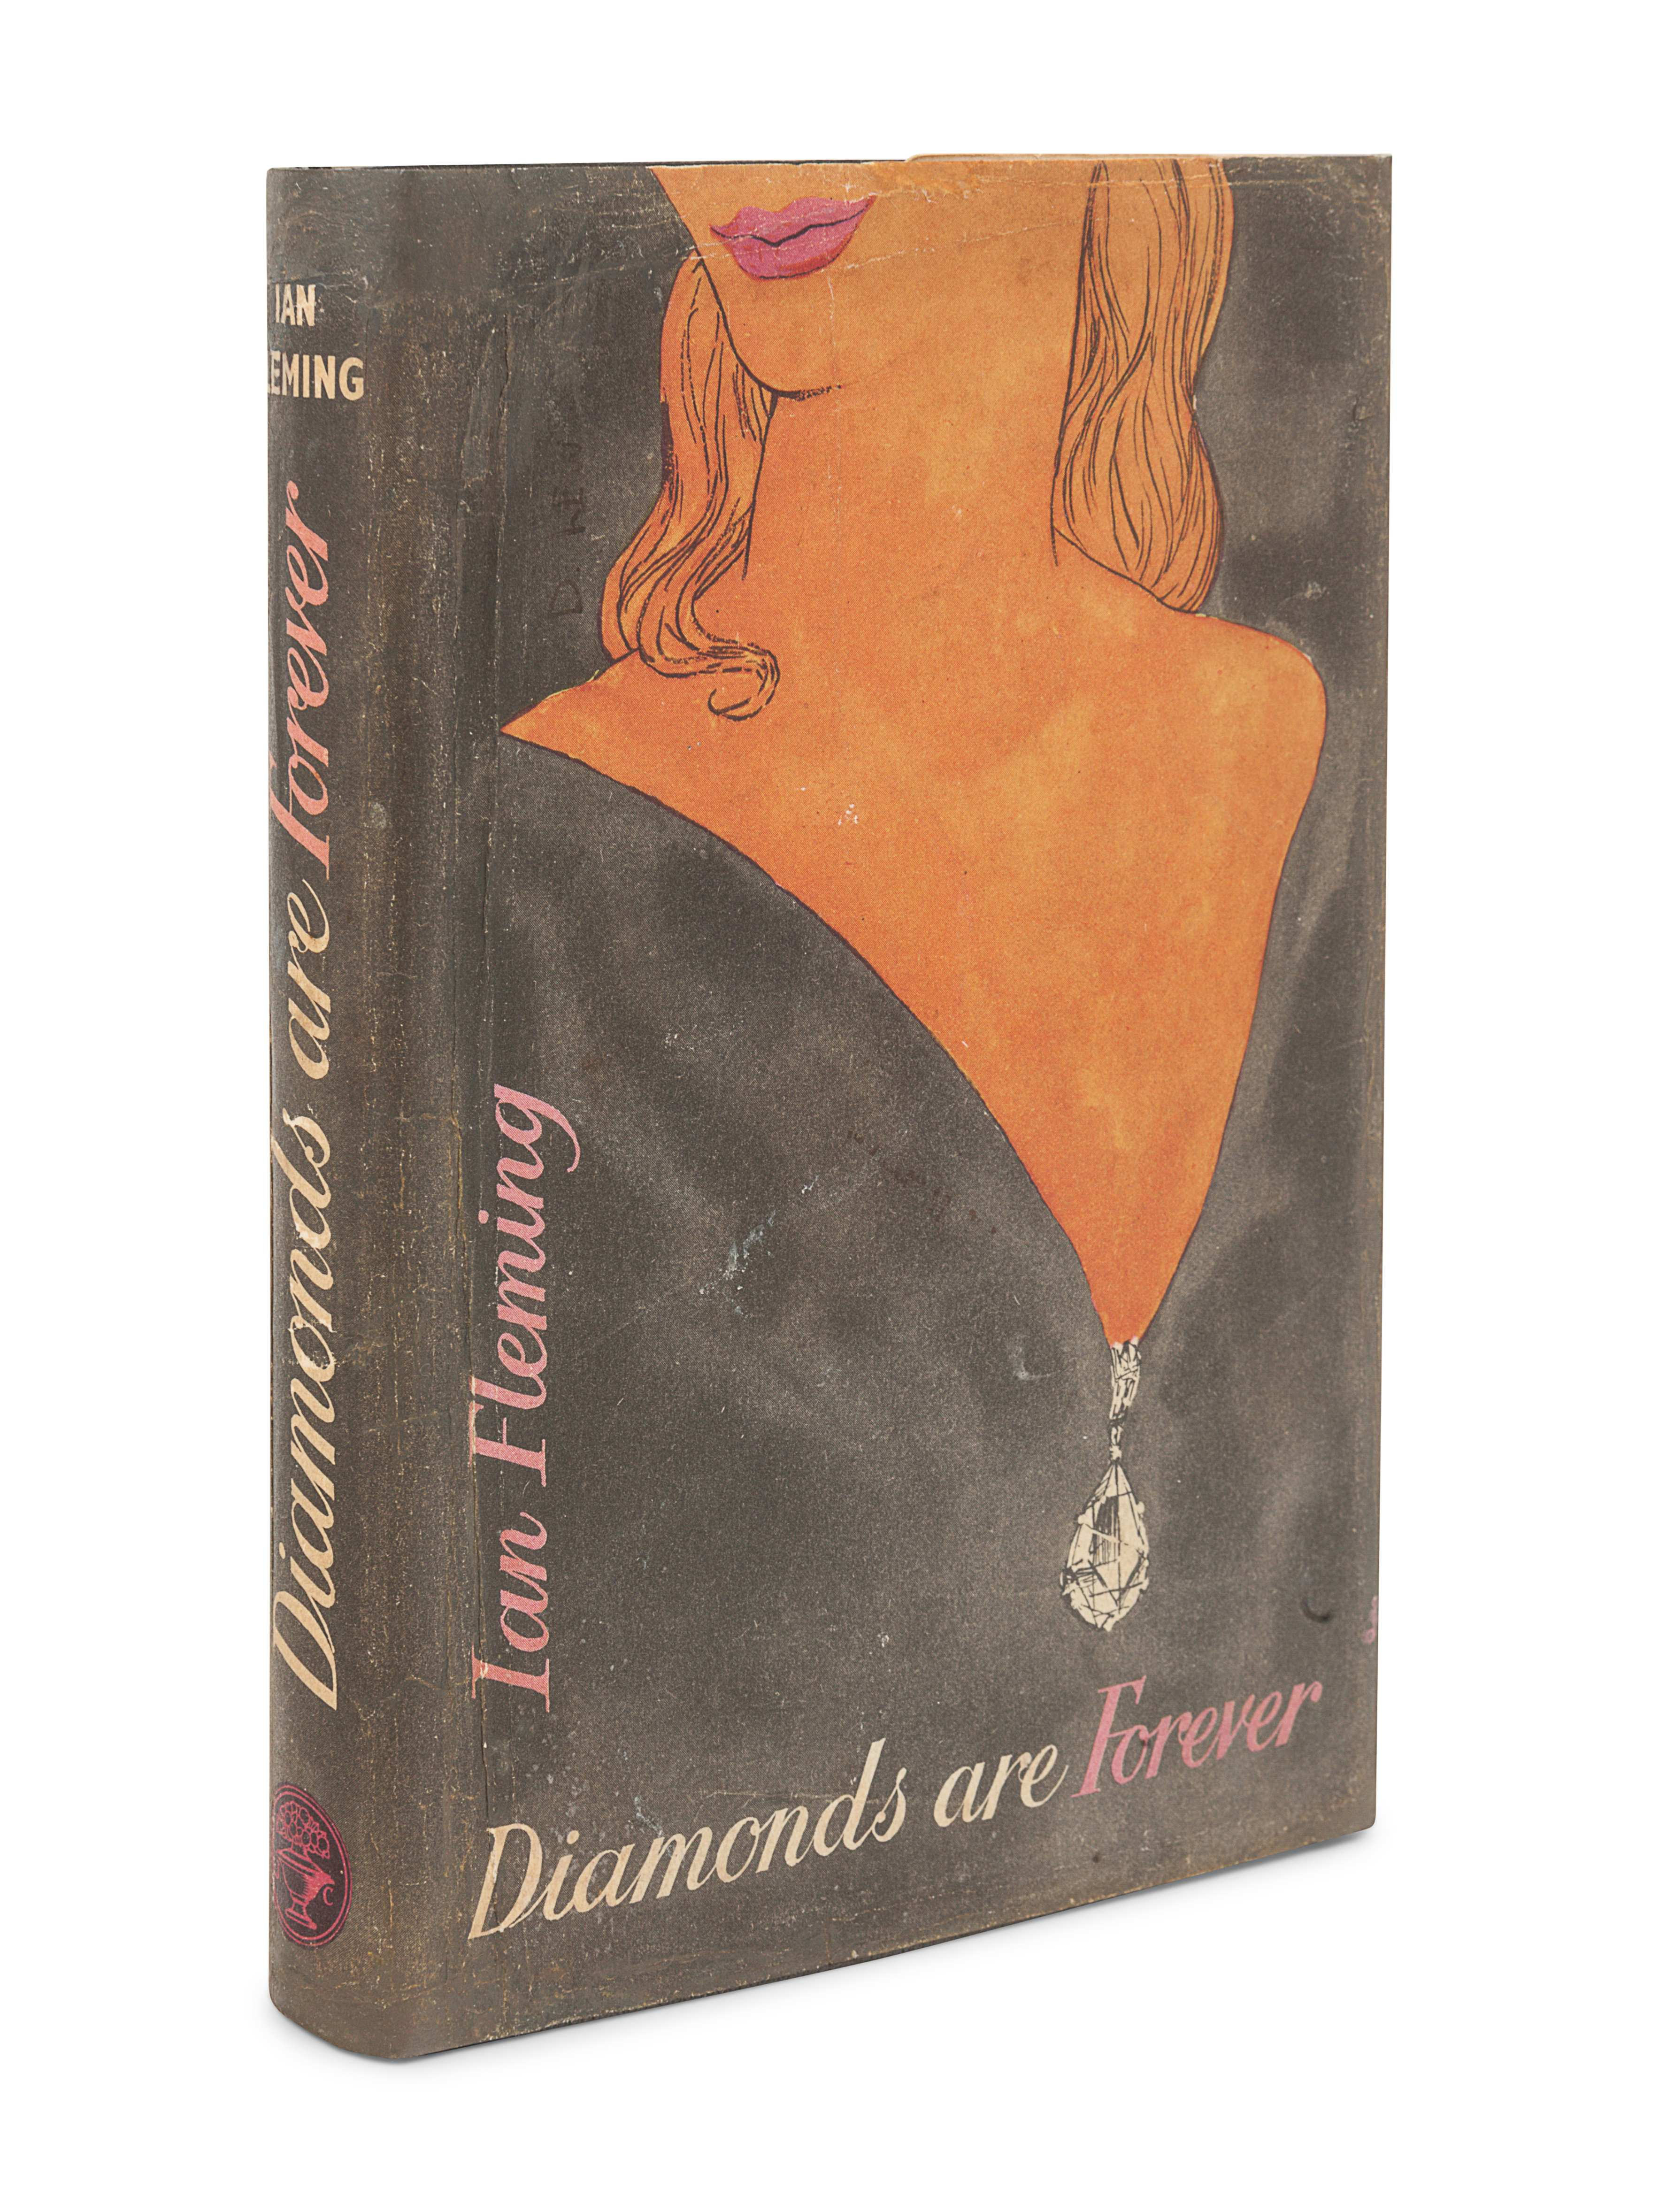 FLEMING, Ian (1908-1964). Diamonds Are Forever. London: Jonathan Cape, 1956. - Image 2 of 3